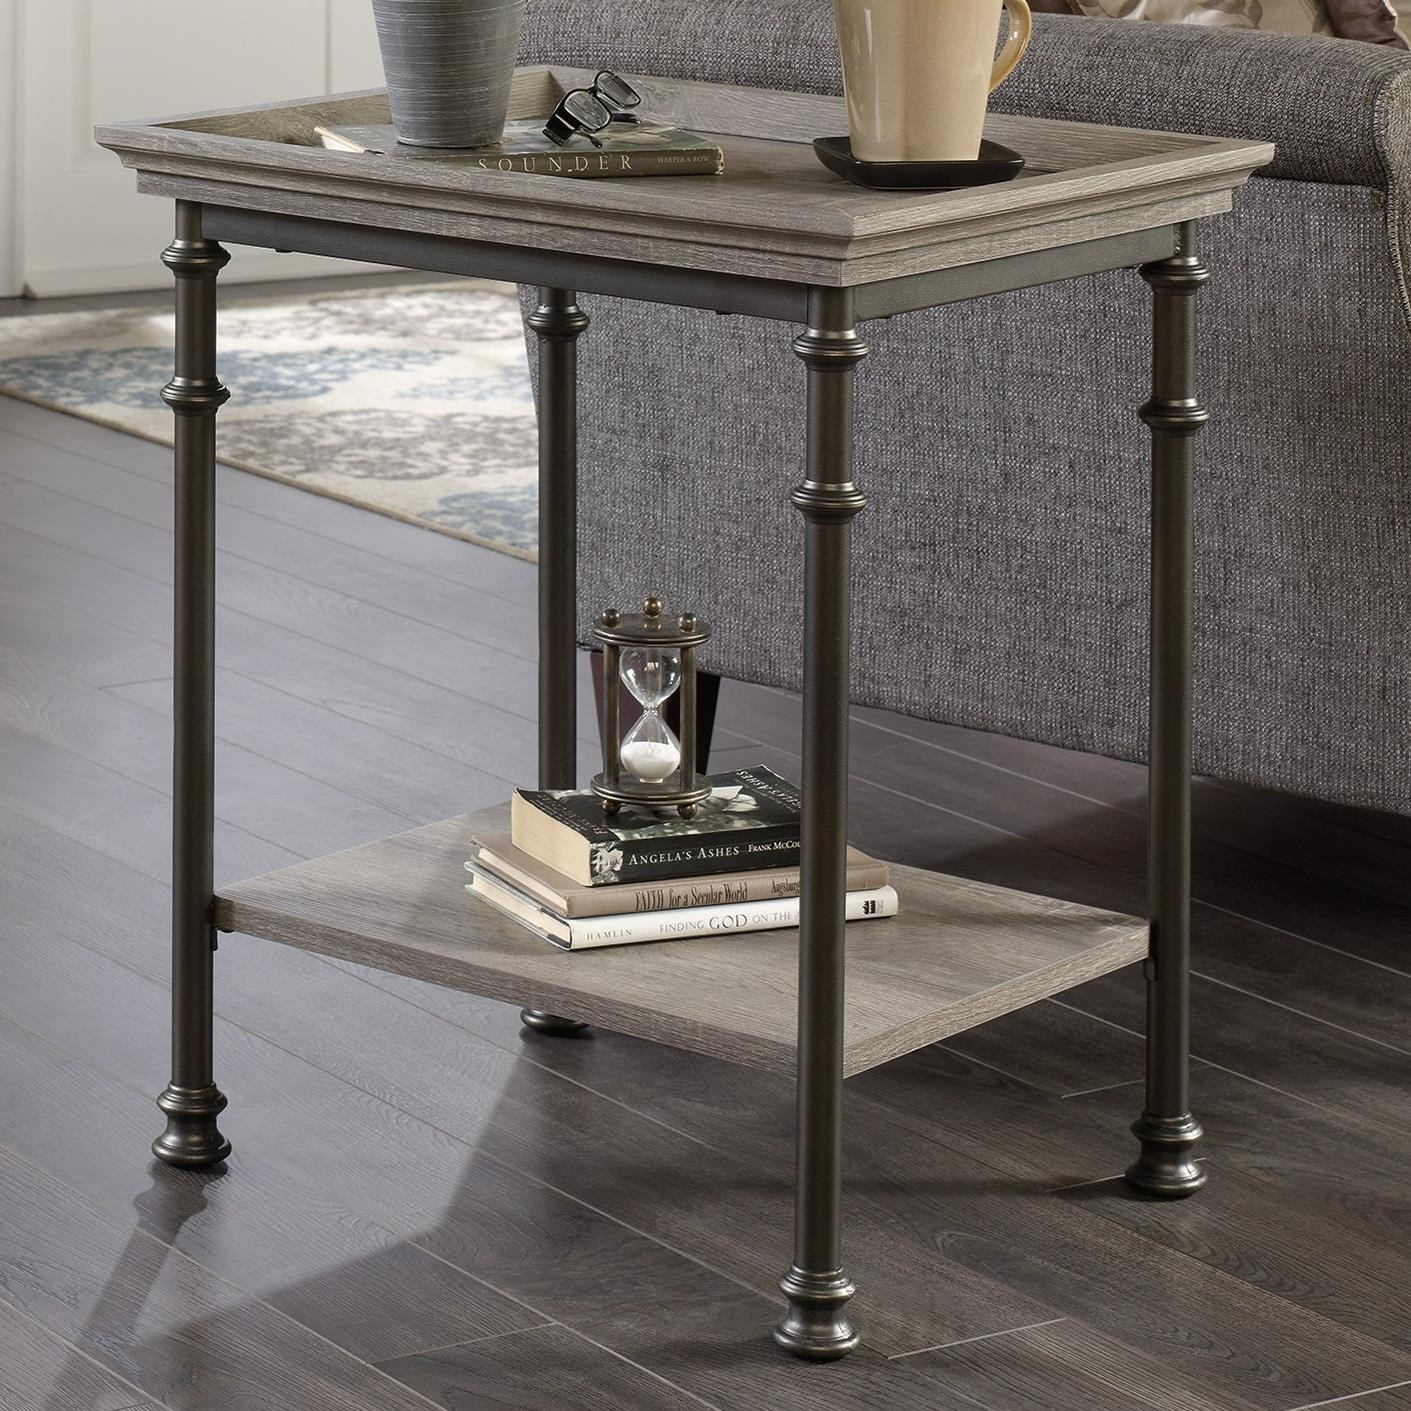 Sauder Canal Street Side Table With Metal Frame And Tray Edge Table Top    Becker Furniture World   End Tables